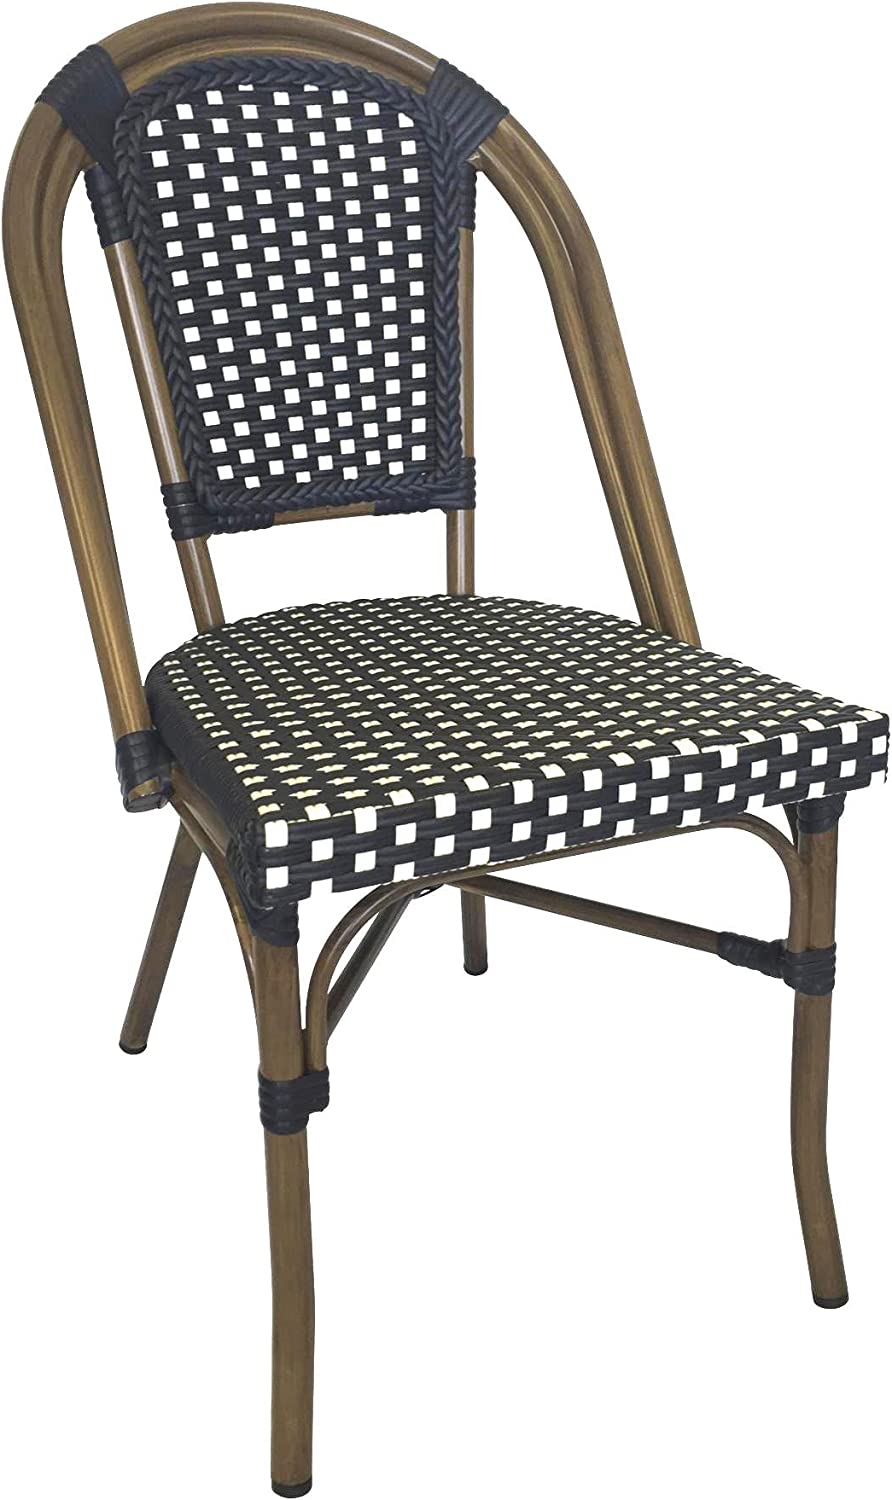 Table in a Bag CBCNW Faux Bamboo All-Weather Wicker Stackable Bistro Chair, Navy with White Accents